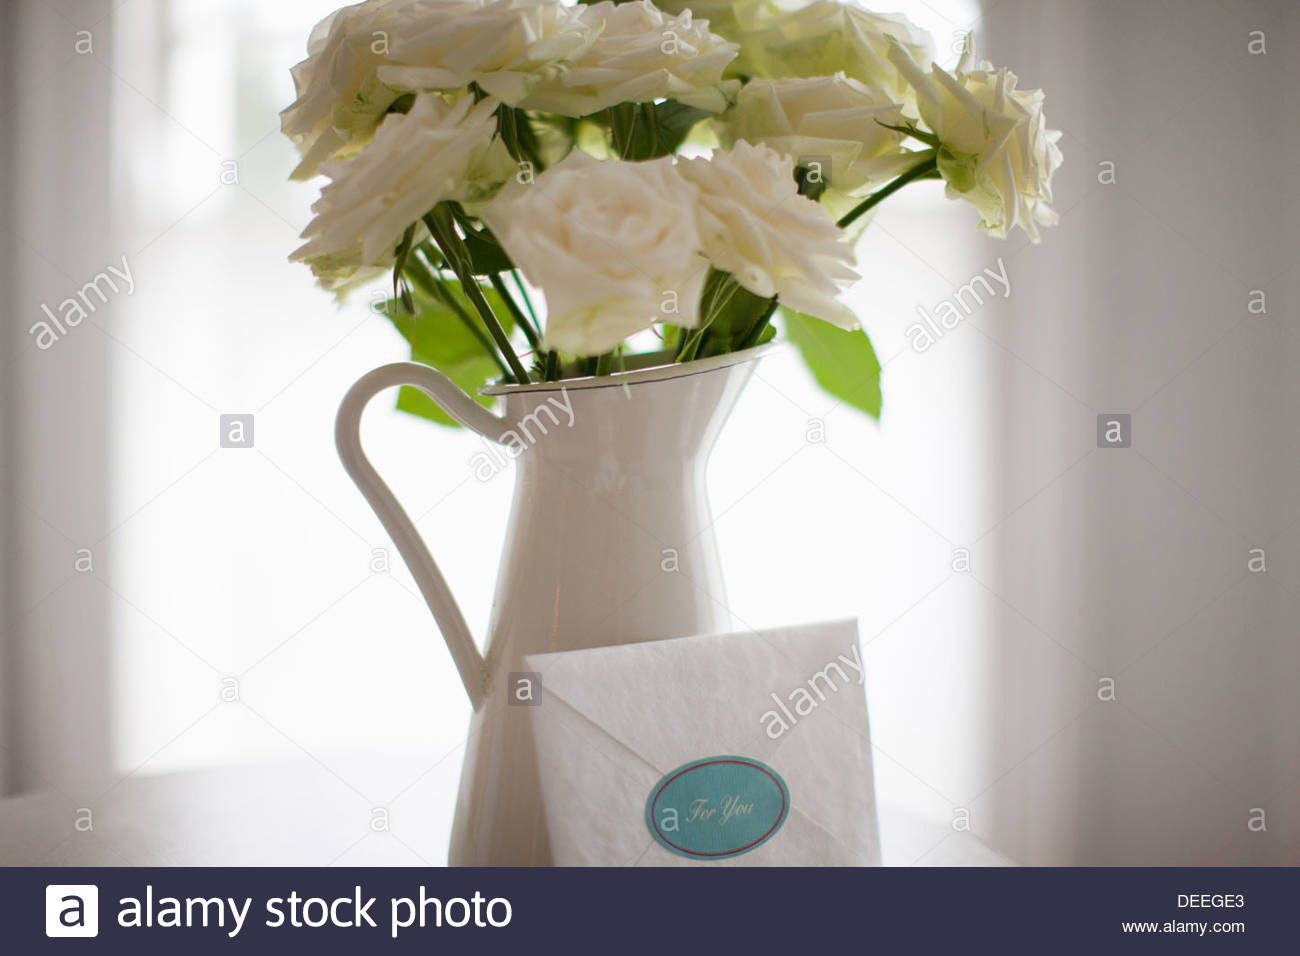 Card leaning against white rose bouquet in pitcher - Stock Image